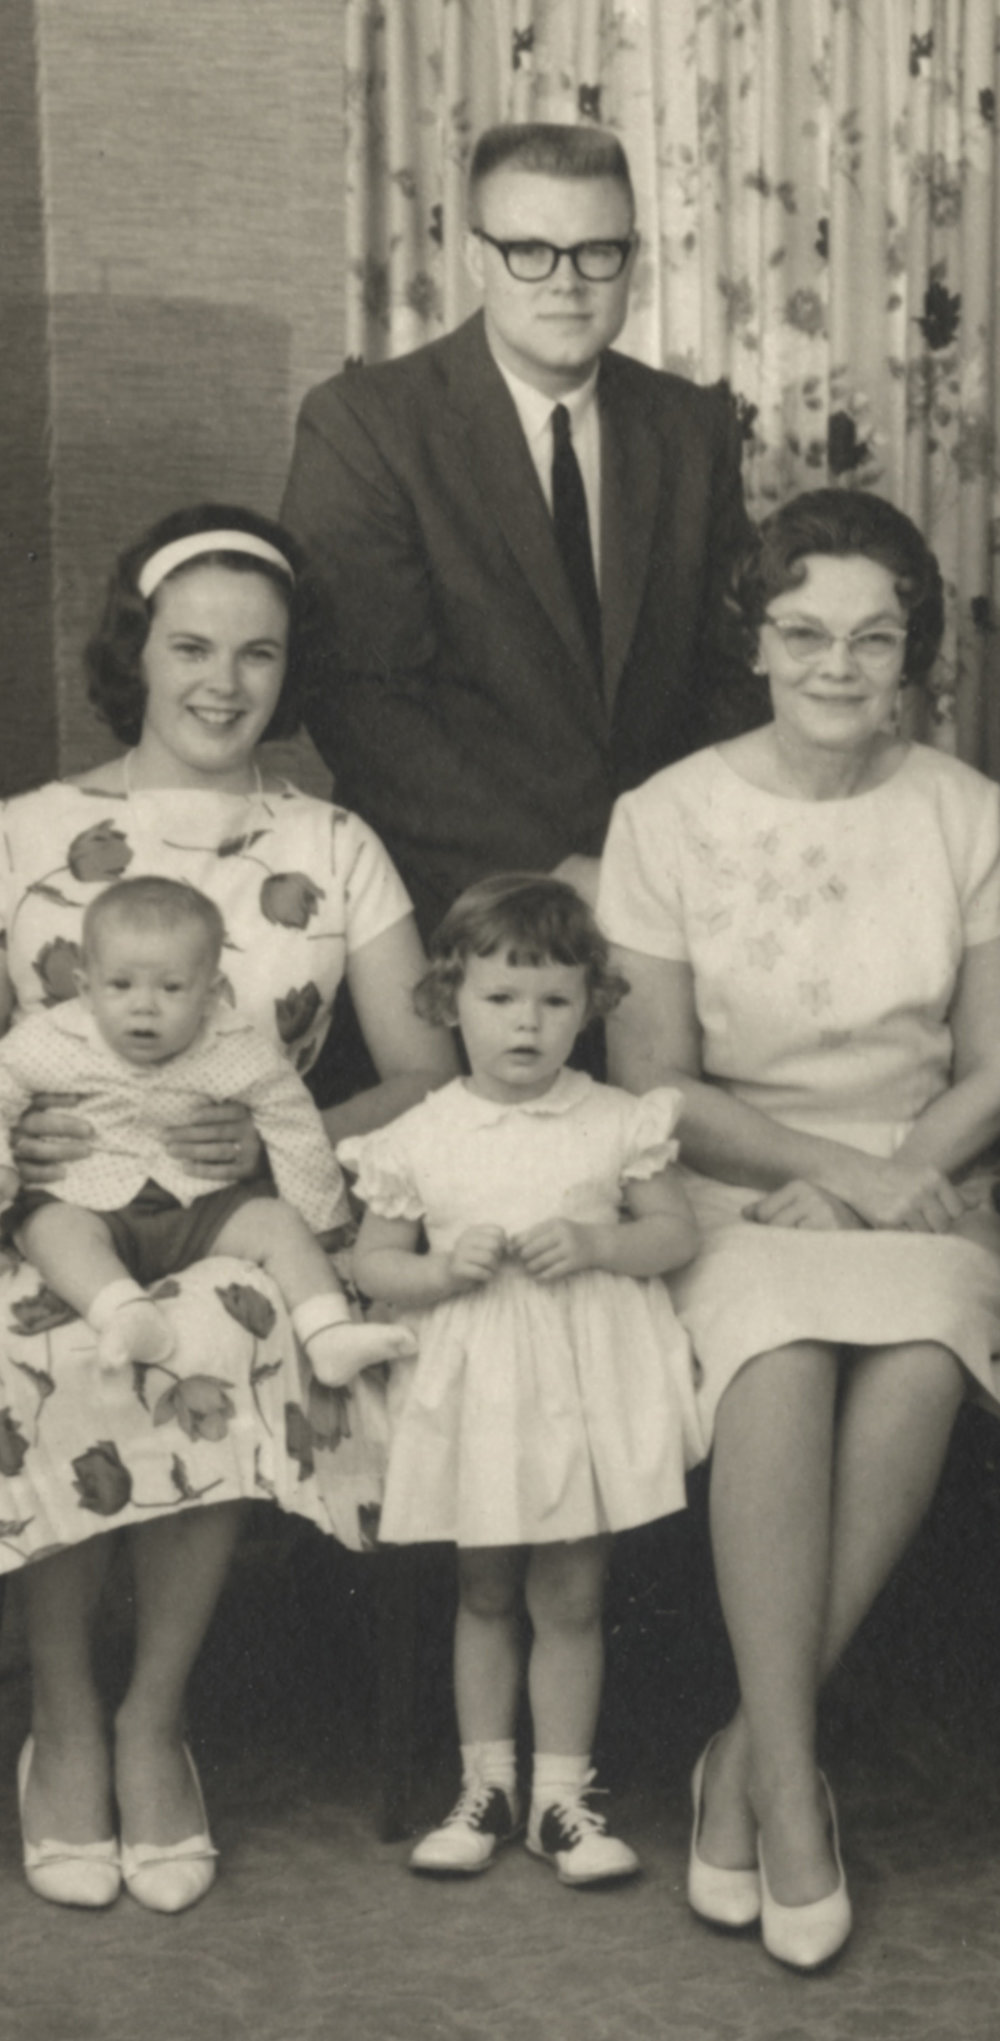 "Jim Dowd, in the back; Betty Dowd with Ken Dowd in her lap; Debbie Dowd (now Clinebell) standing center; Martha Combrink Dowd (Jim's mother, my grandmother) at right. This is a detail from a much larger family photograph shot at 1021 Oxford in 1965. That conservative-looking guy in the back was a freedom rider in the South and on the scene for the March on Washington. He heard Martin Luther King Jr.'s ""I Have a Dream"" speech live. (The audio was garbled and difficult to follow.)"